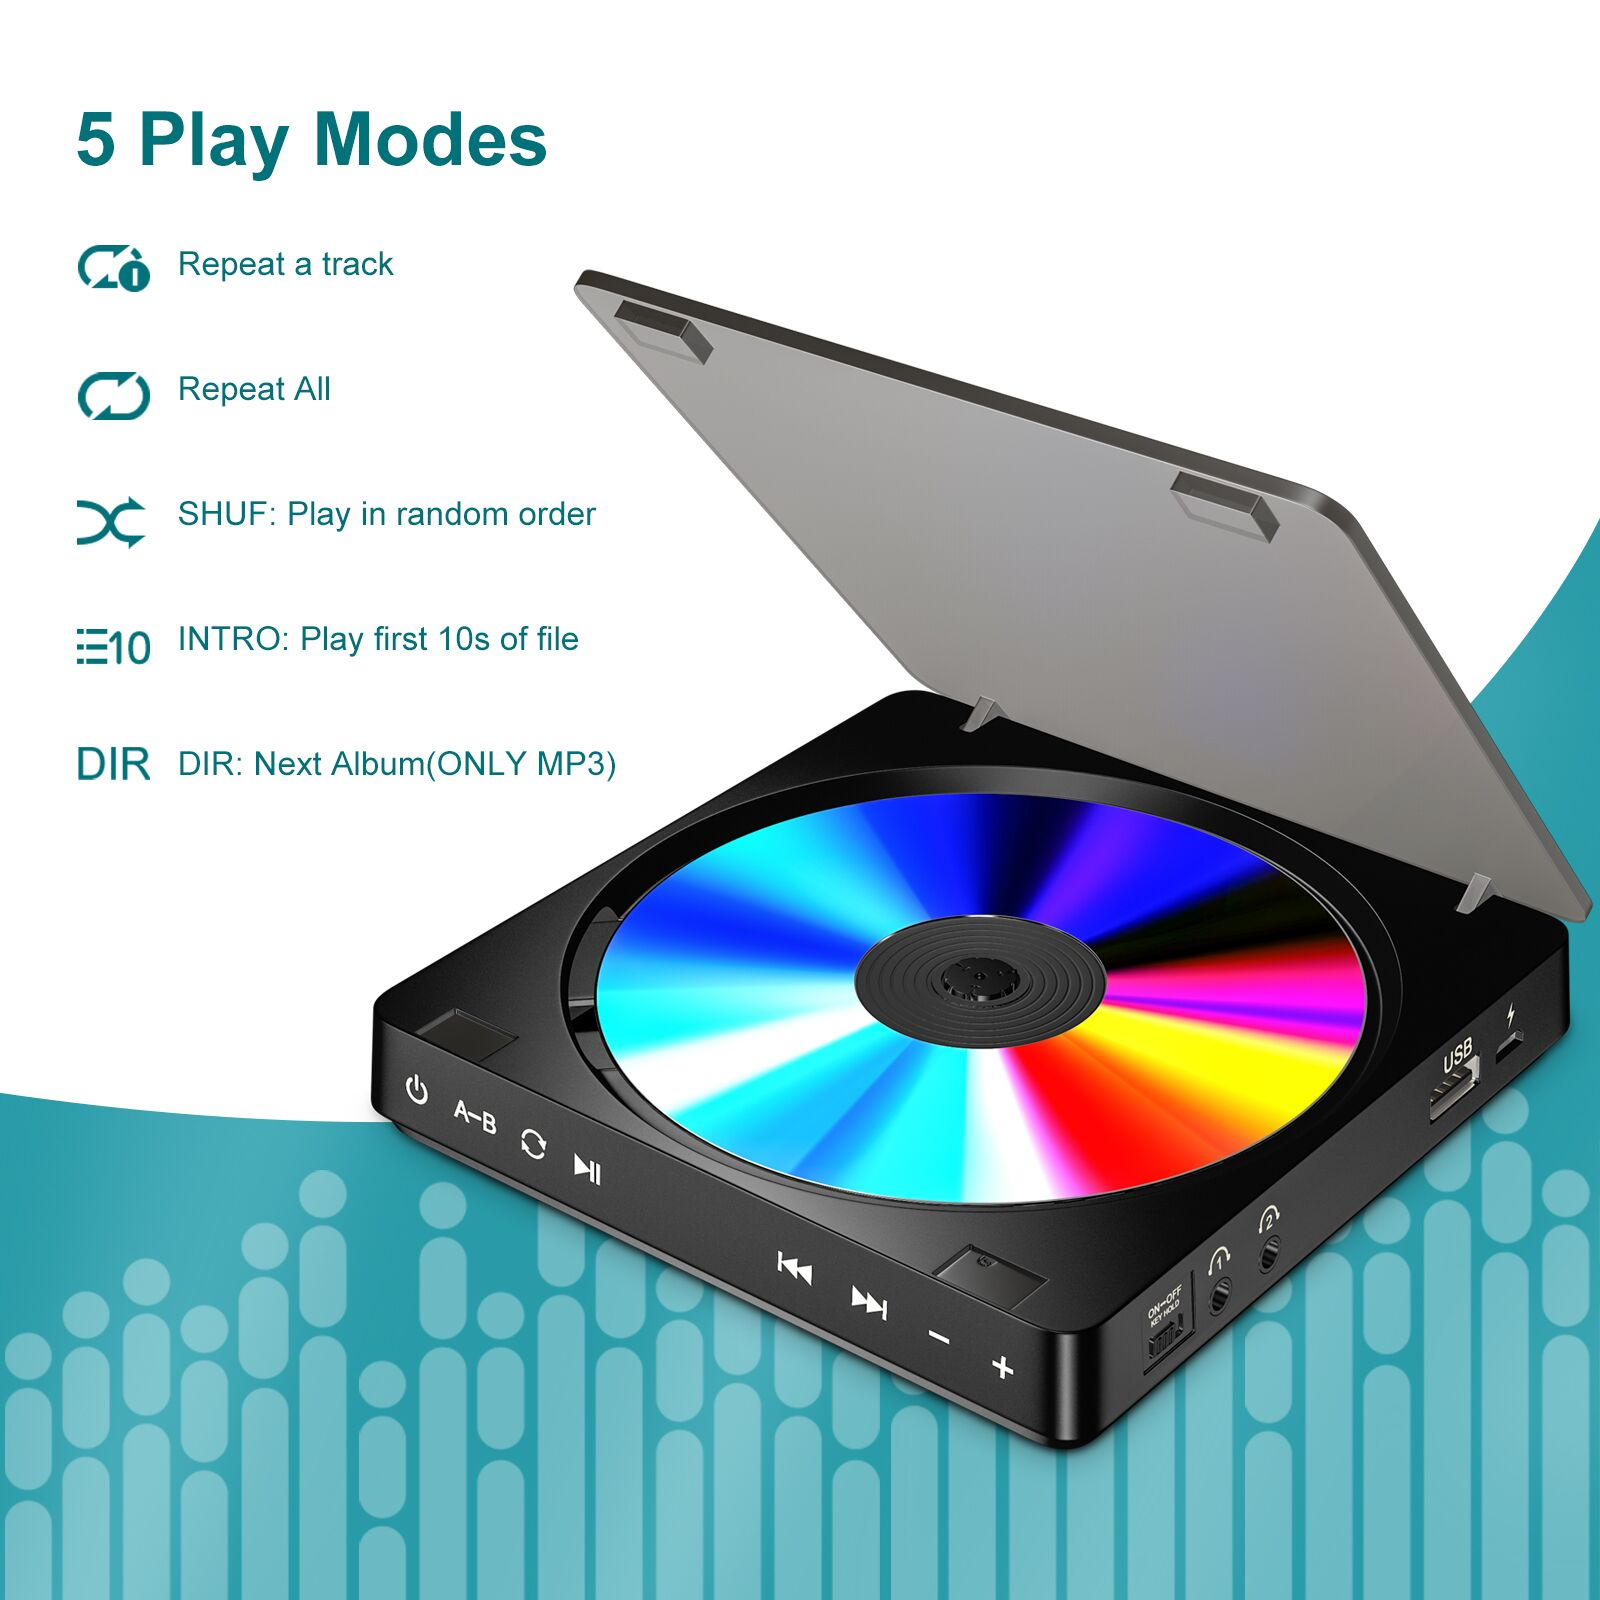 Portable CD Player Double Headphone Version Touch Button Reproductor CD Walkman Discman Rechargeable Shockproof LCD Display 6